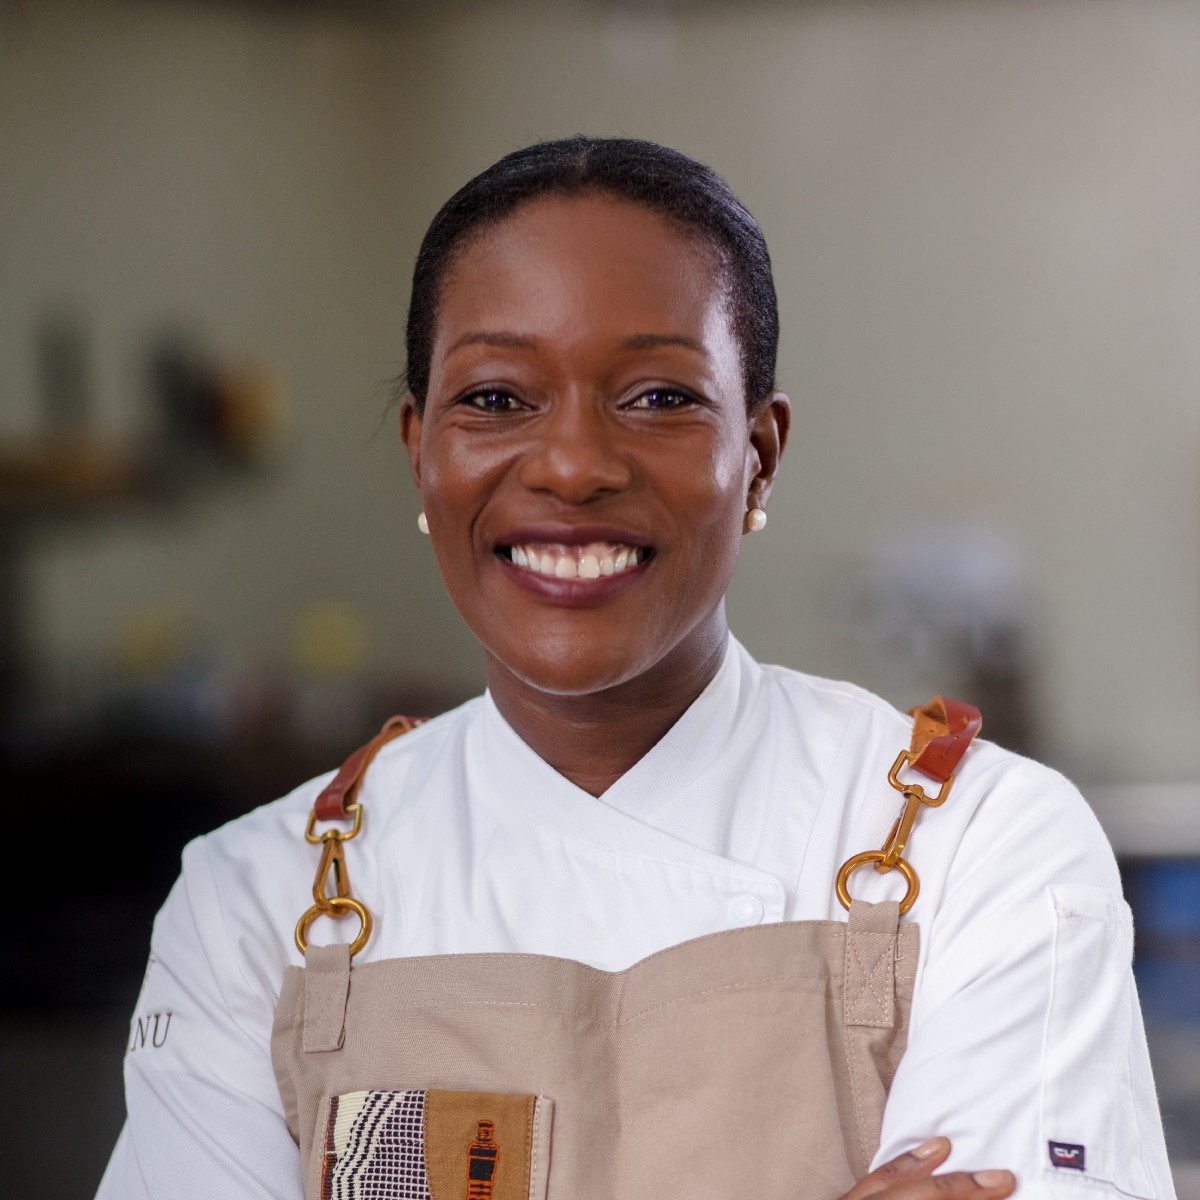 One Ghanaian Chef Is Placing New African Cuisine on the Global Map